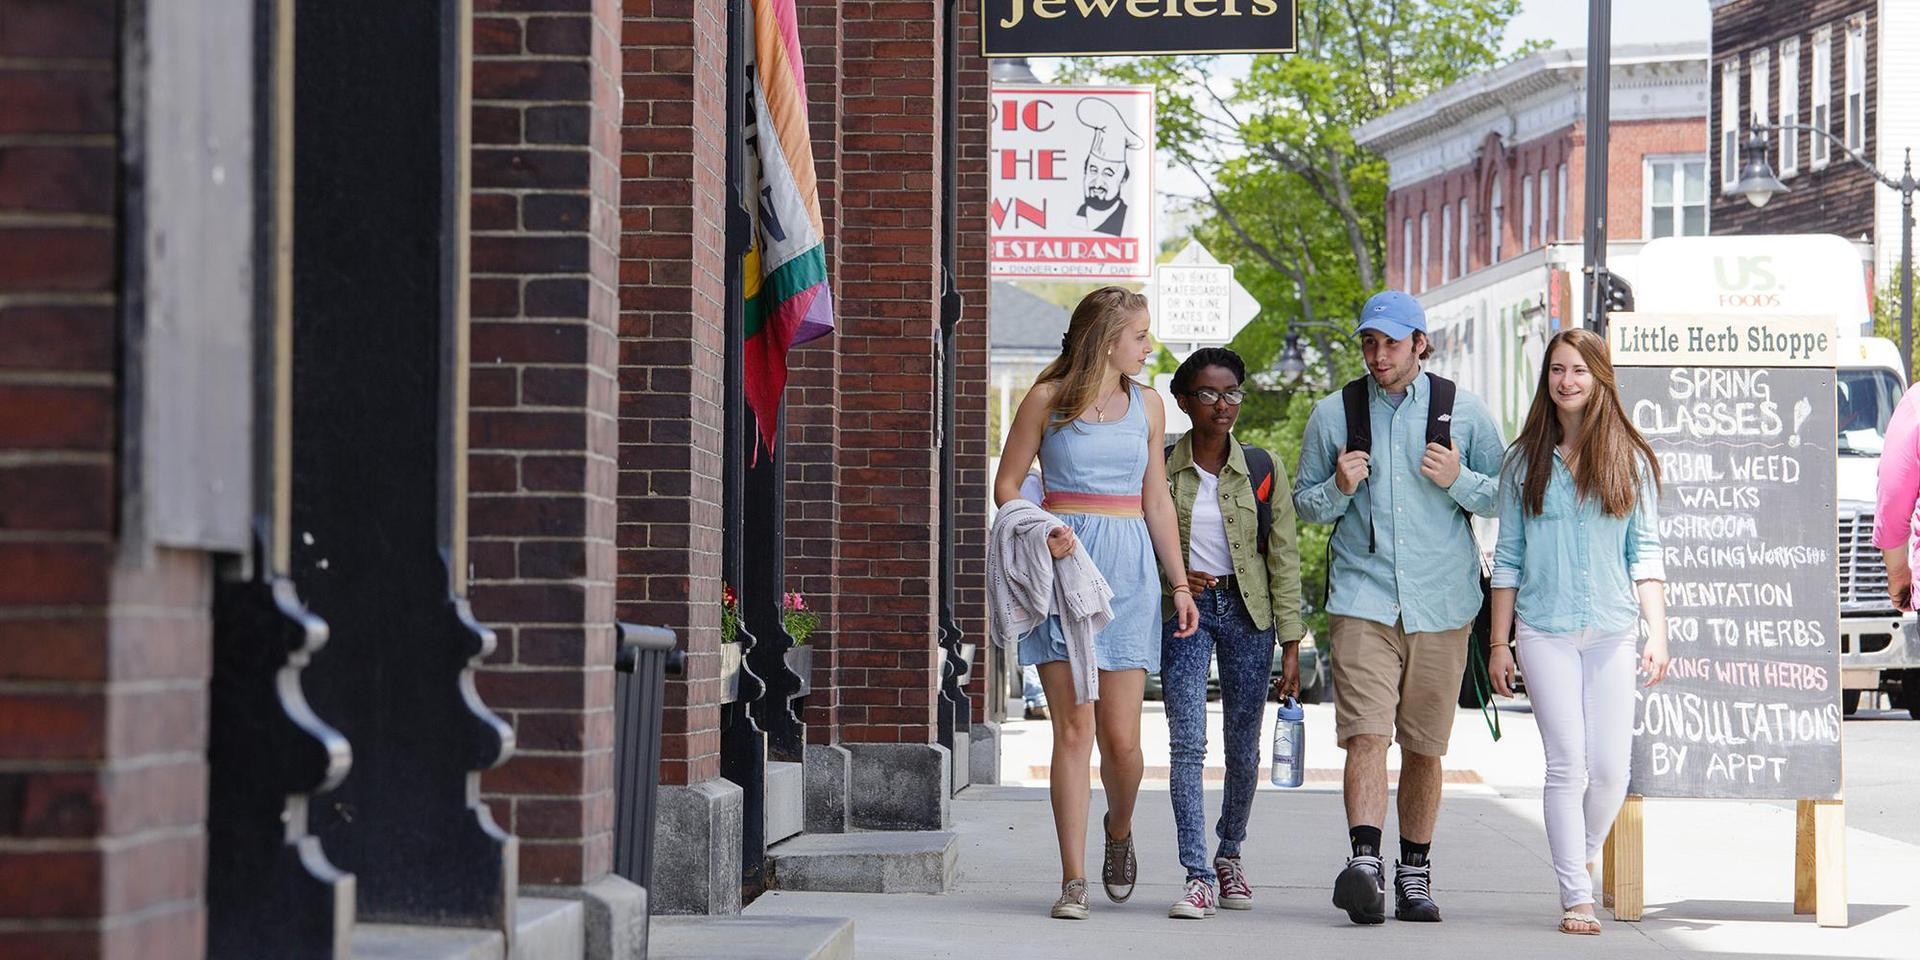 A group of students walking in downtown Littleton, New Hampshire.